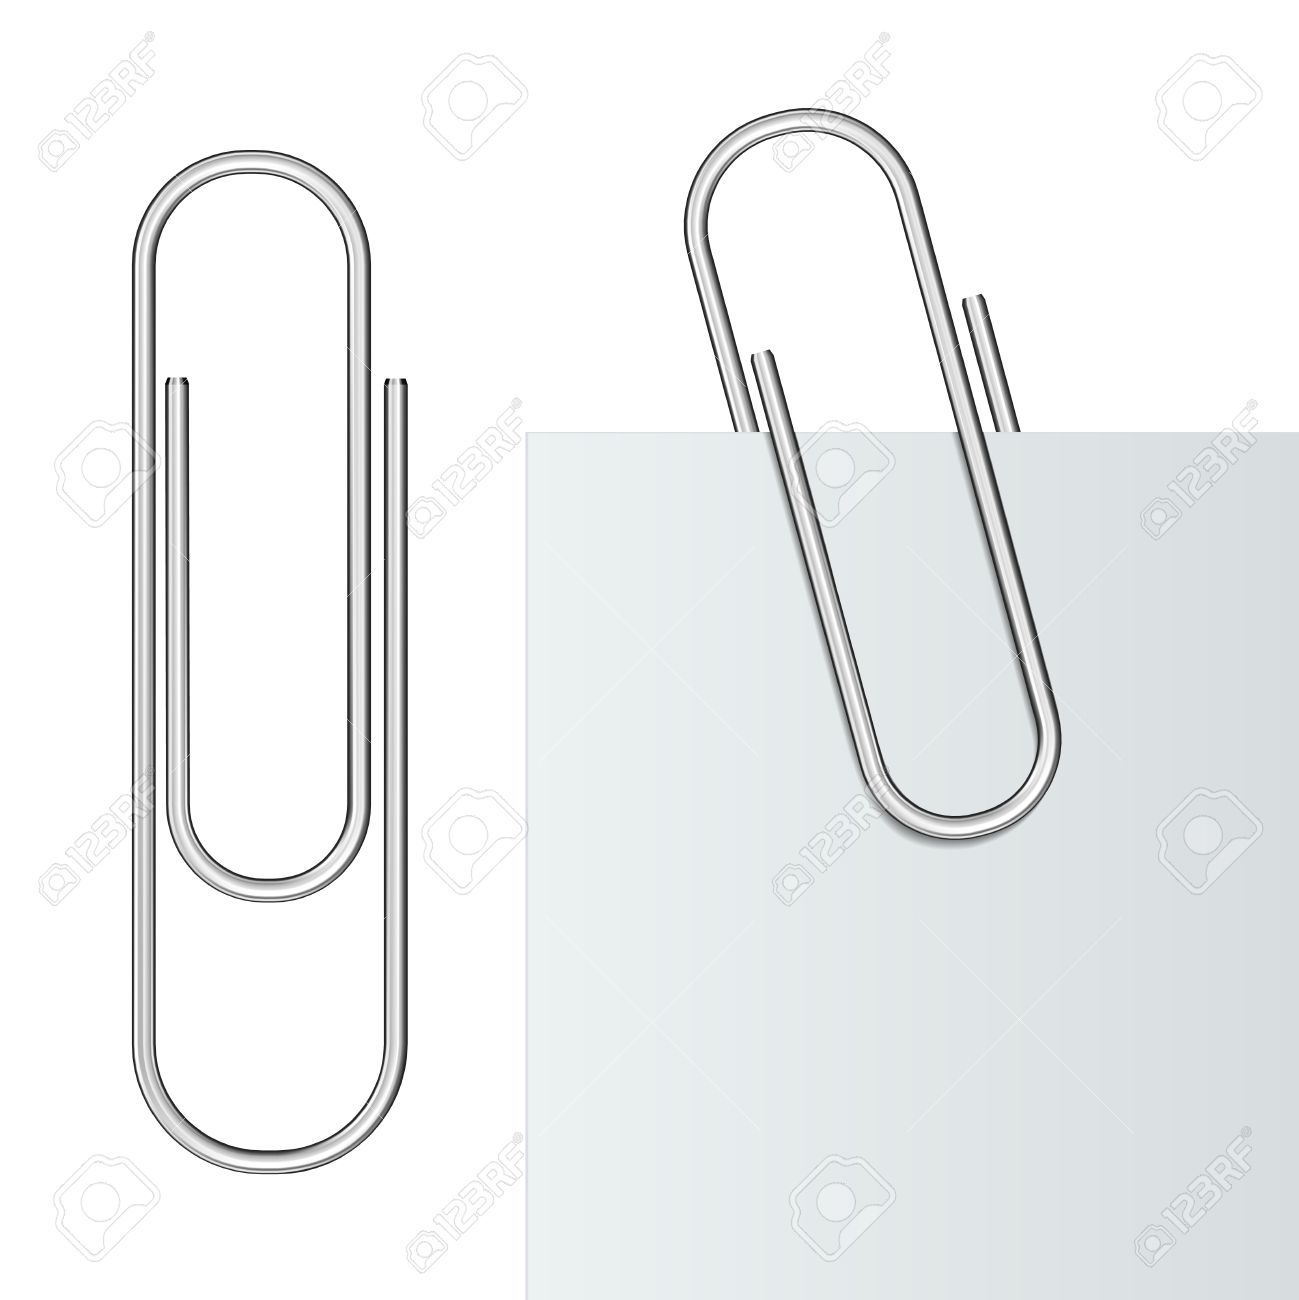 metal paper clip and paper isolated on white background illustration